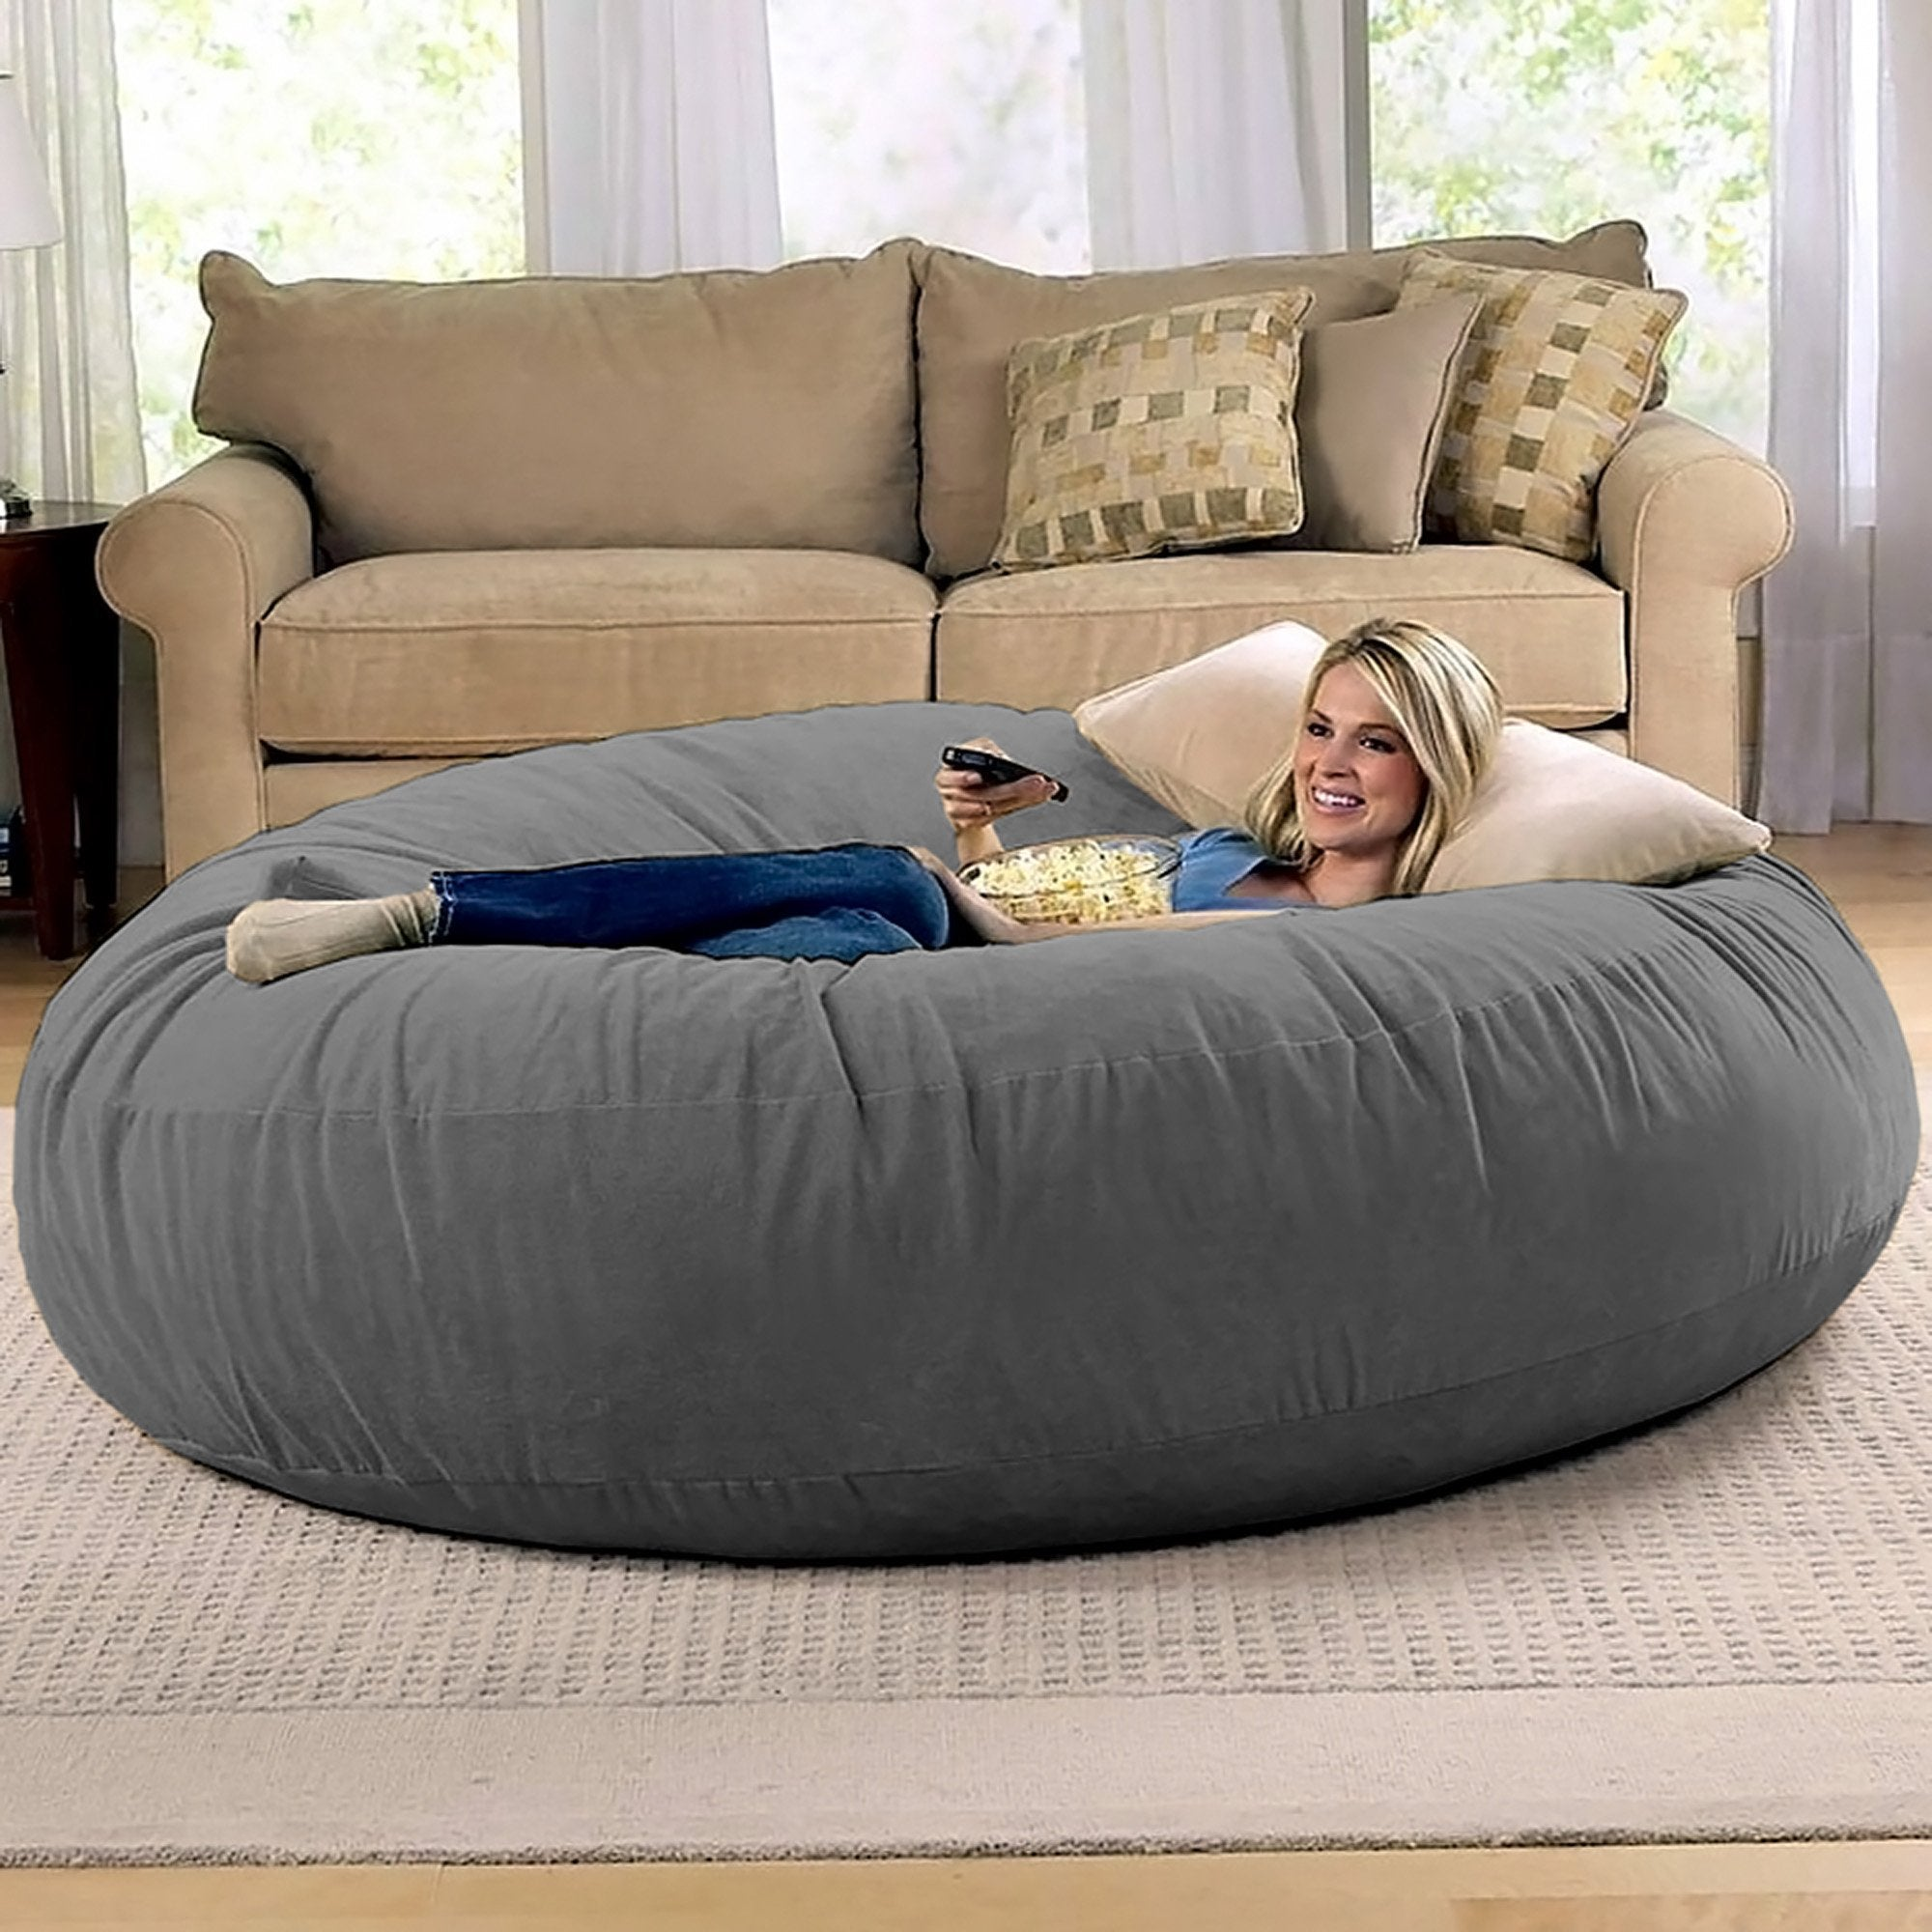 One Up Innovations Jaxx 6' Cocoon Bean Bag Chair in Charcoal